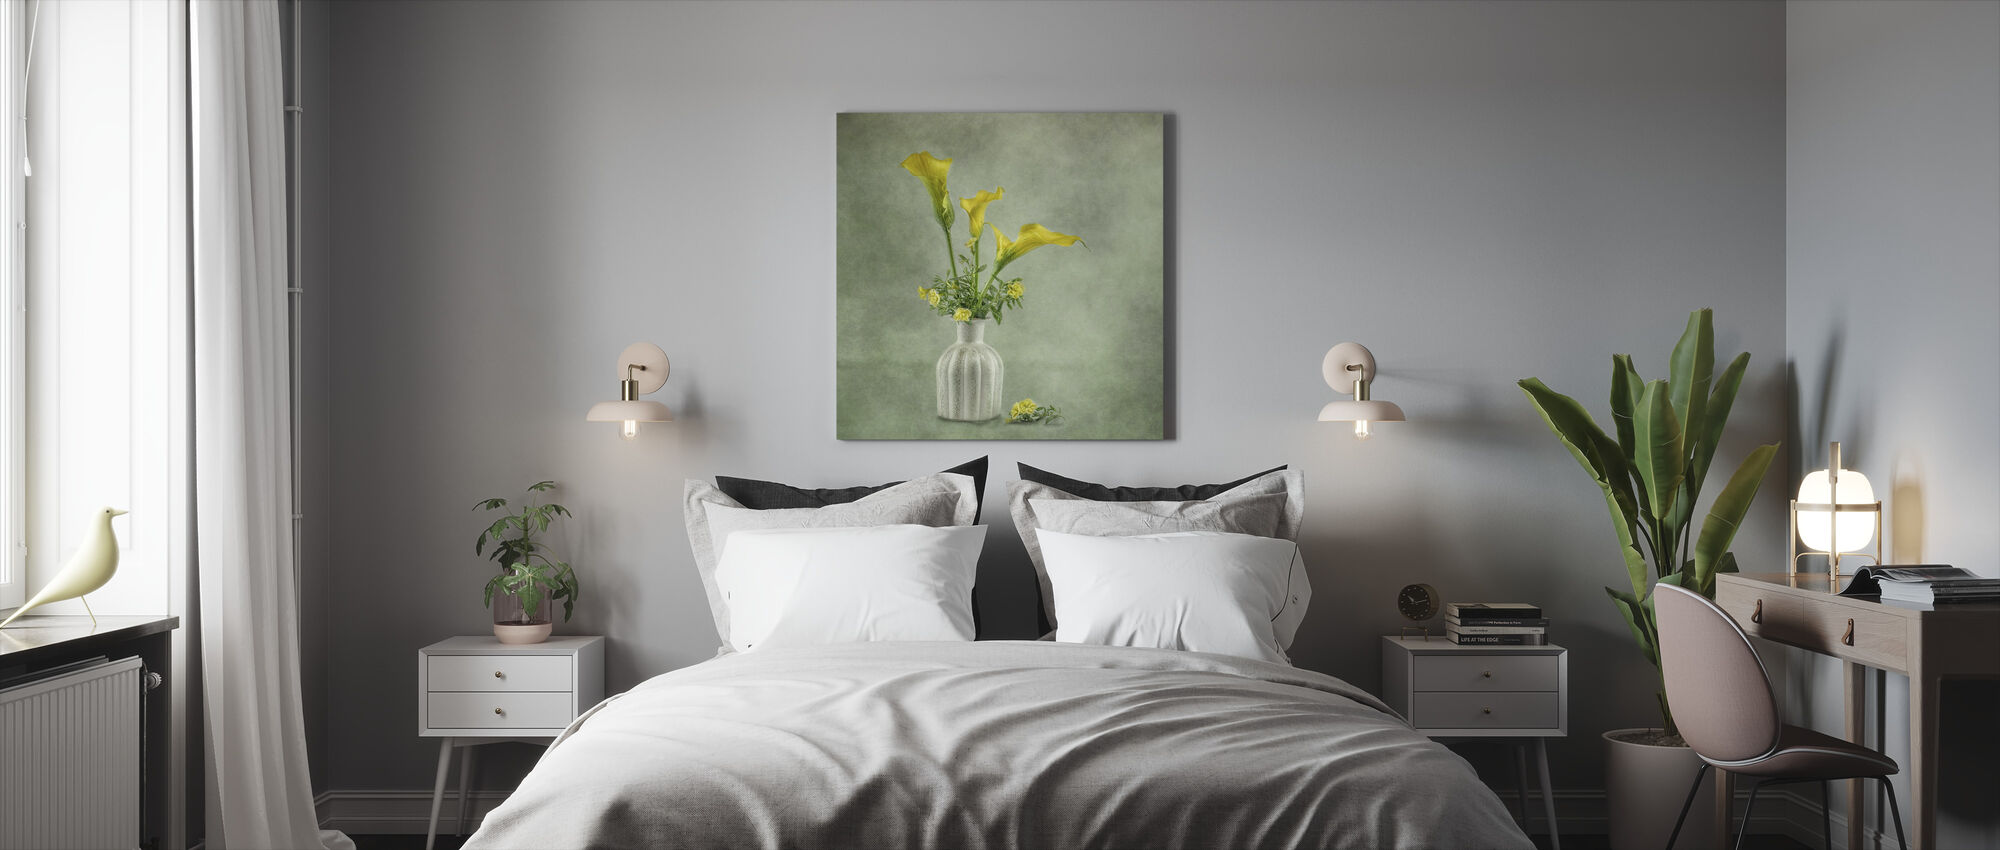 Calia Lillies - Canvas print - Bedroom